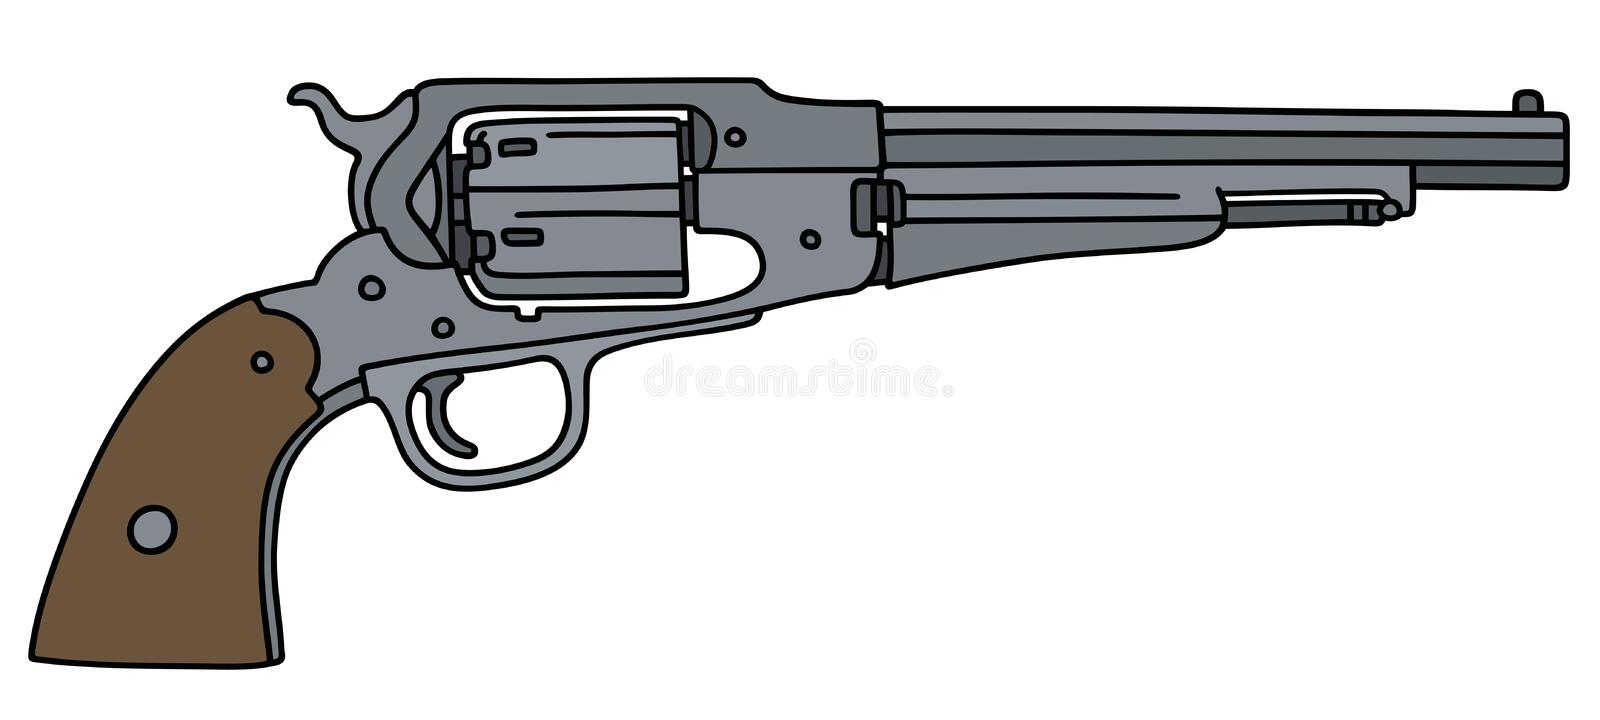 Classic wild west revolver. Hand drawing of a classic american wild west revolver stock illustration